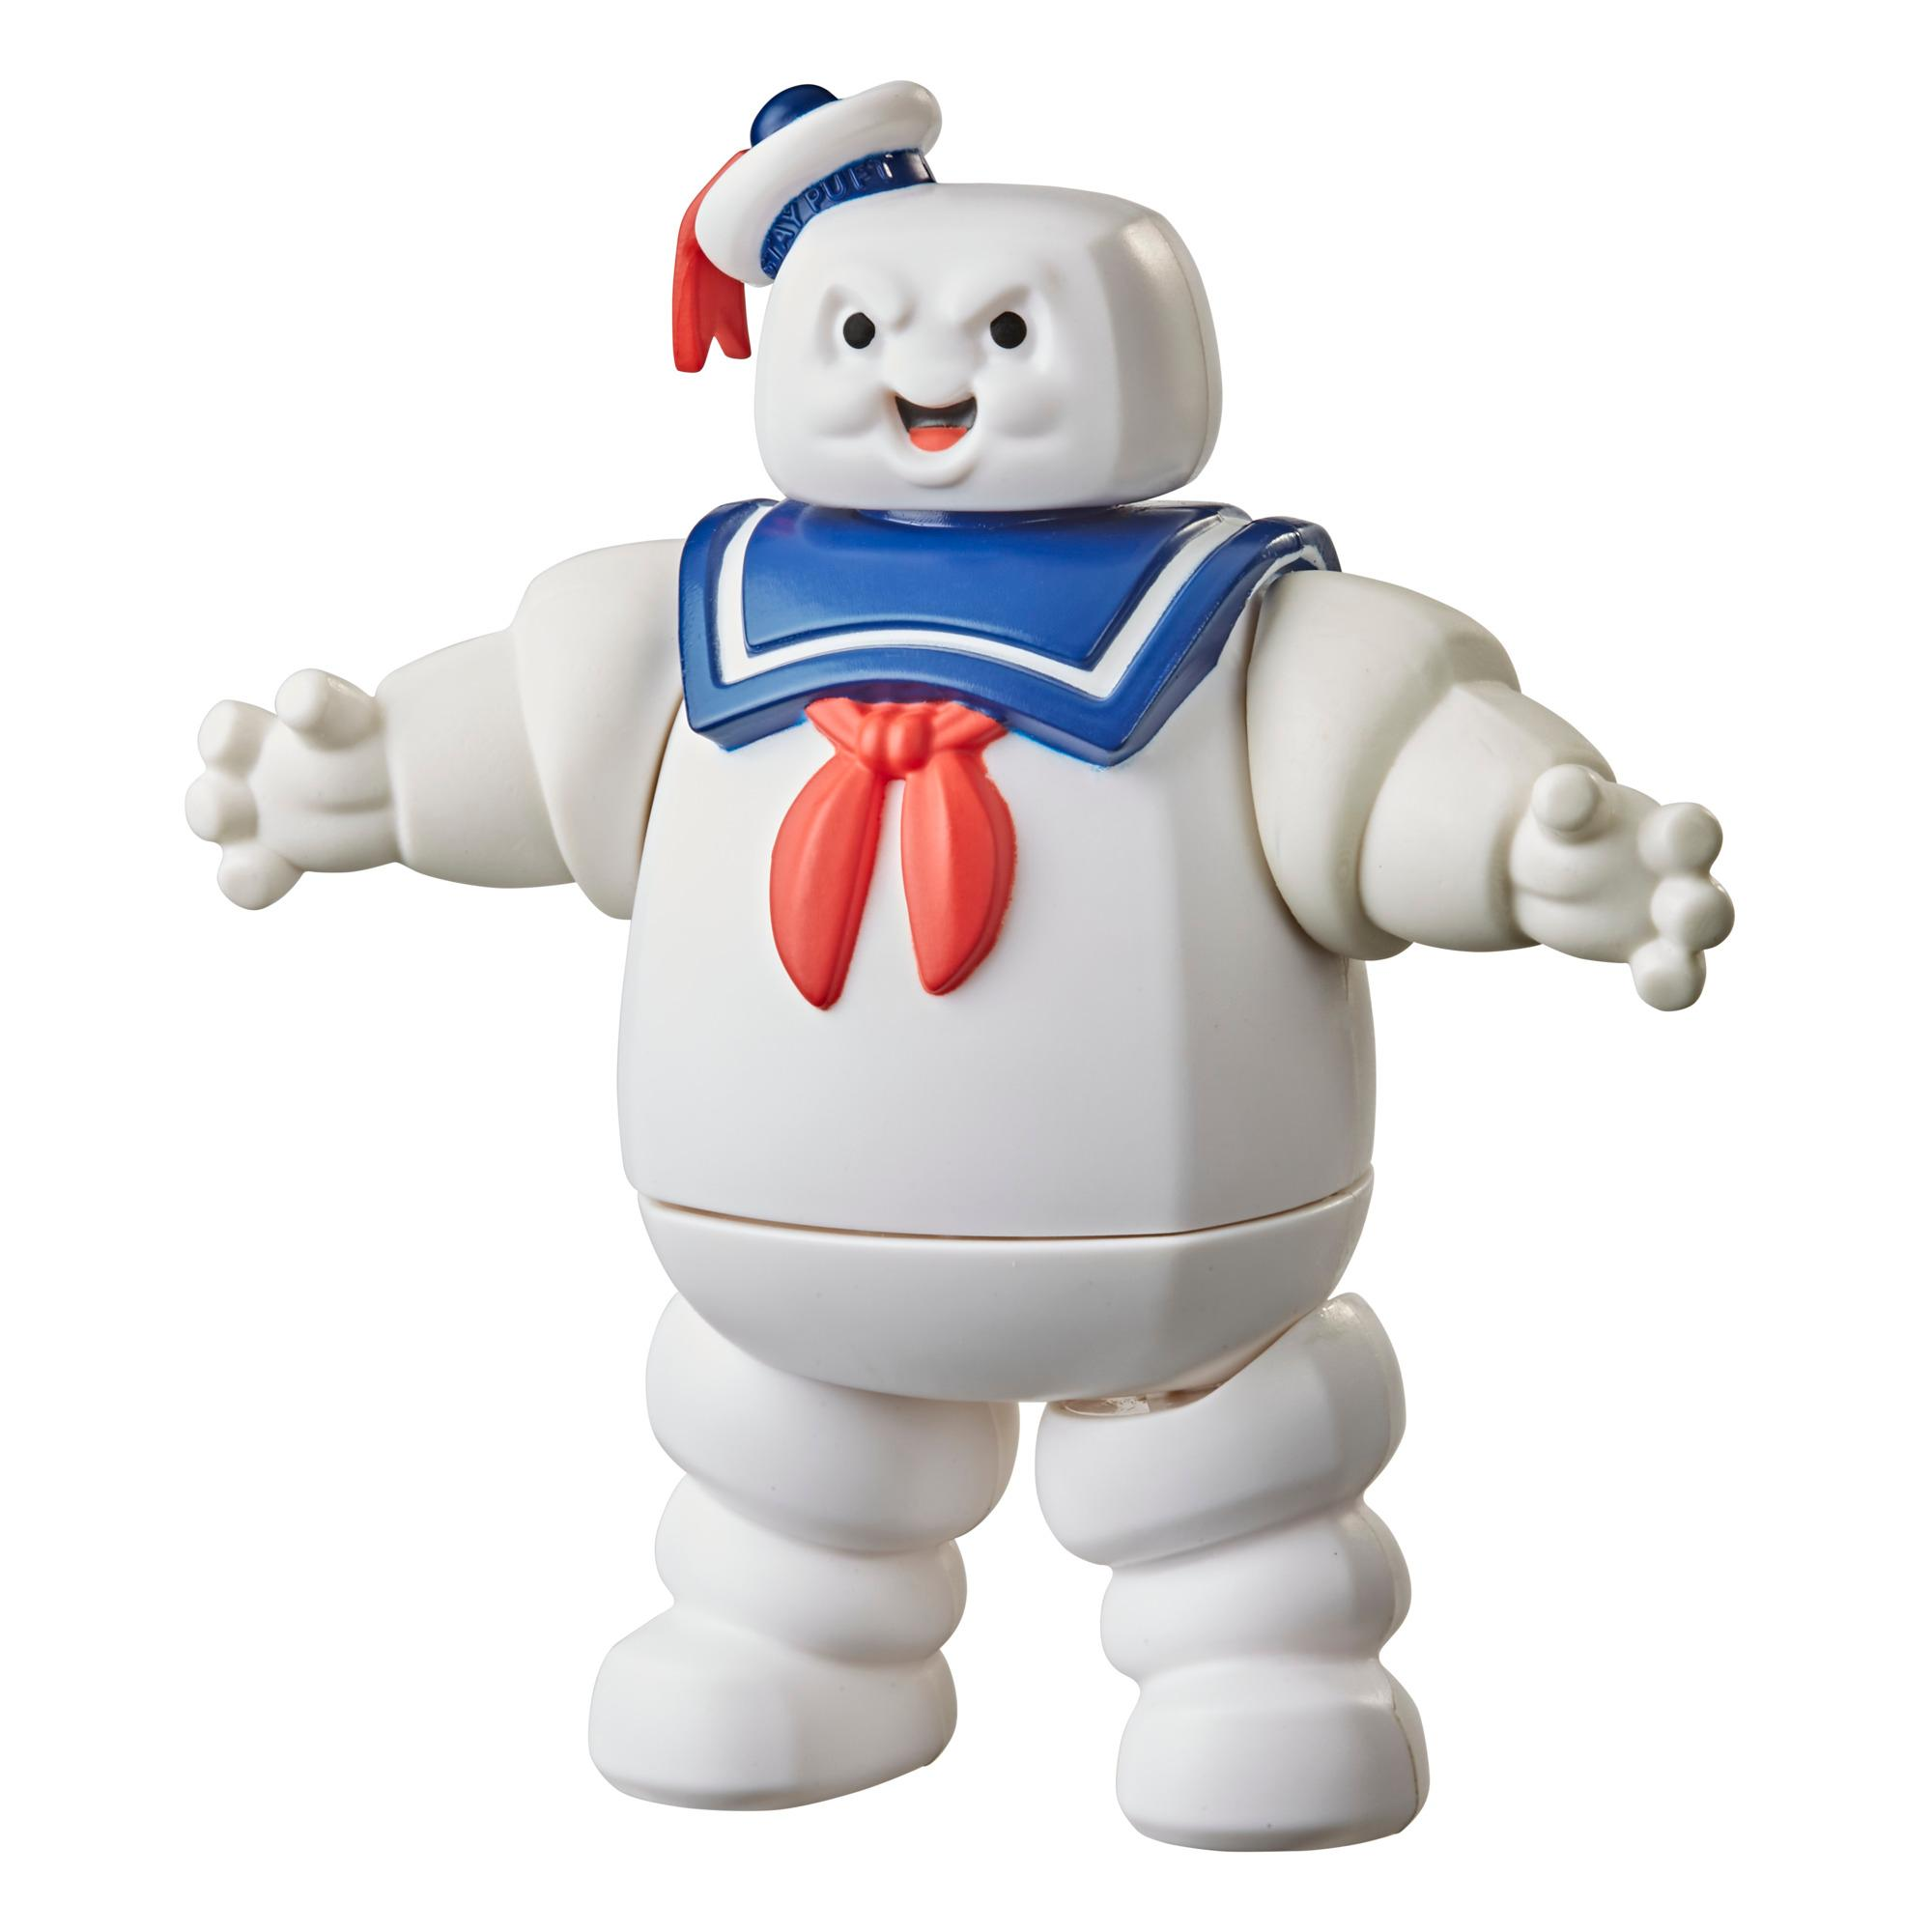 Ghostbusters Fright Feature Stay Puft Marshmallow Man Ghost Figure with Fright Feature, Toys for Kids Ages 4 and Up